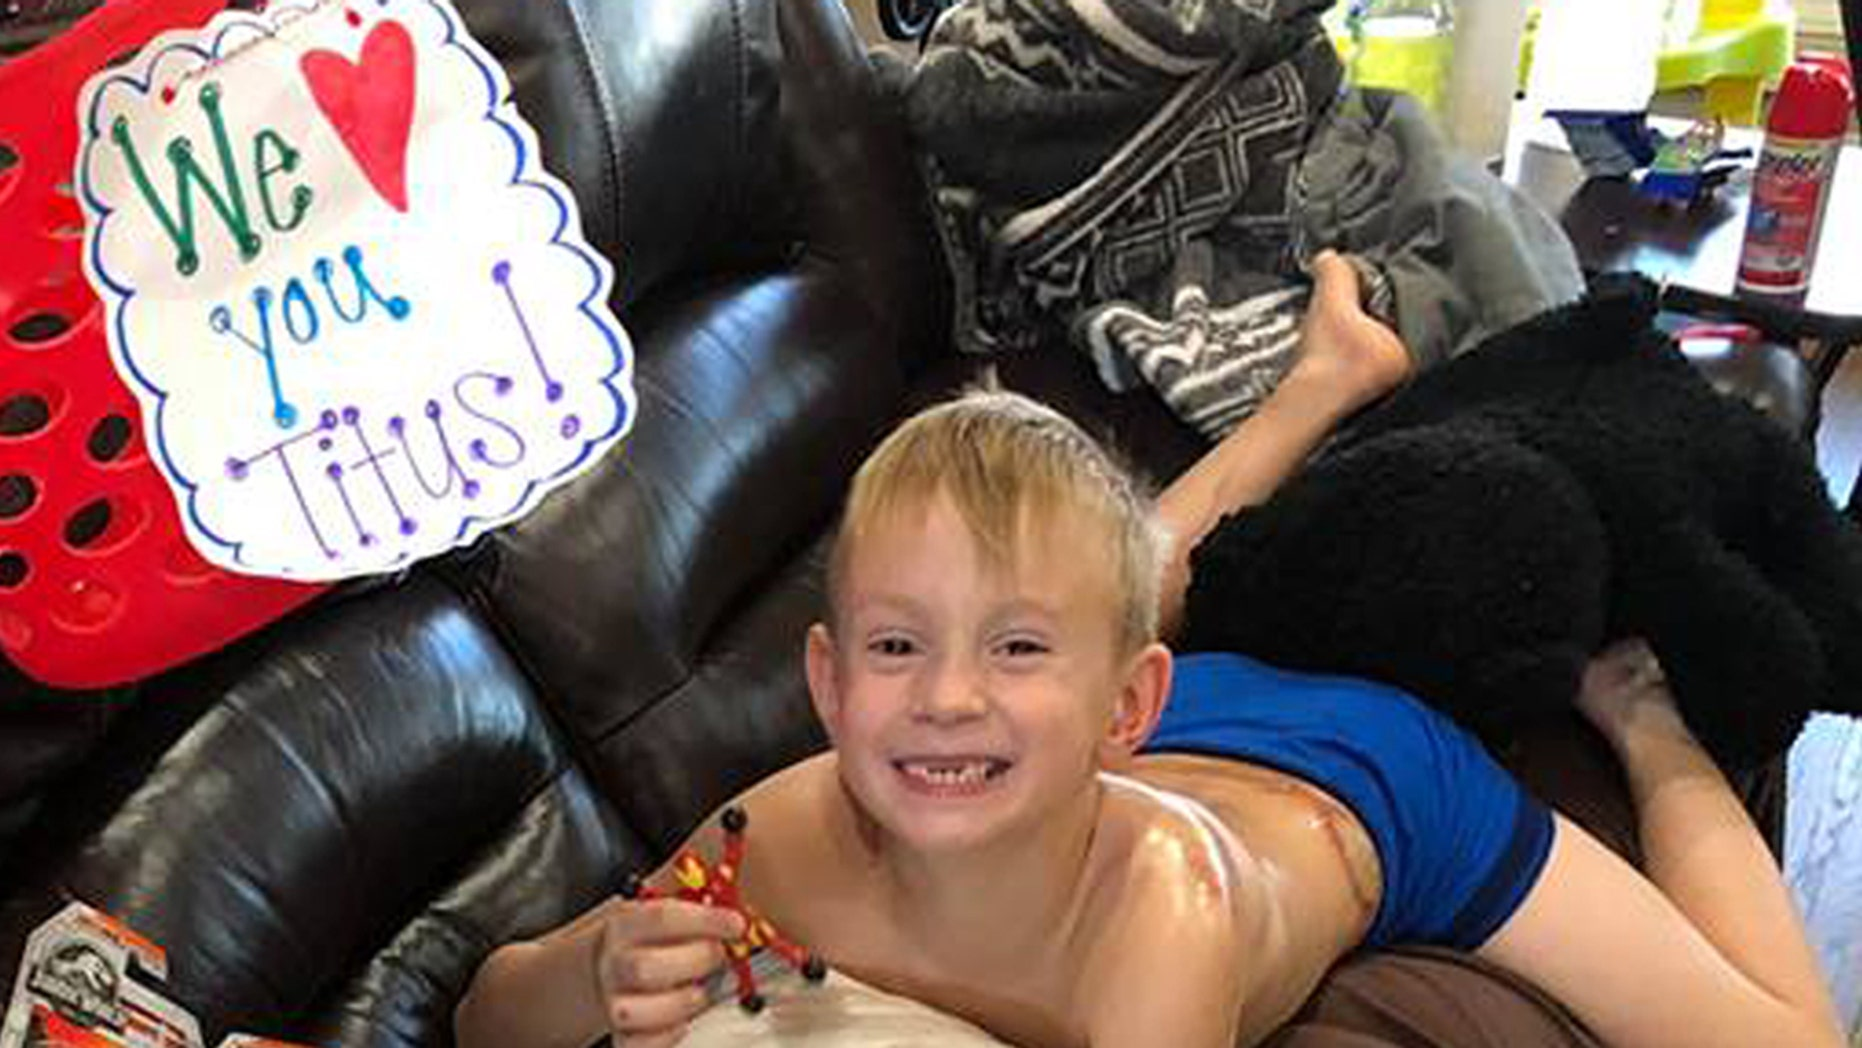 Titus Everett, 6, of Conway, Arkansas, survived after being struck and crushed by a mid-size SUV in the parking lot Sunday after church. His parents are thankful to the community and God for helping save his life.